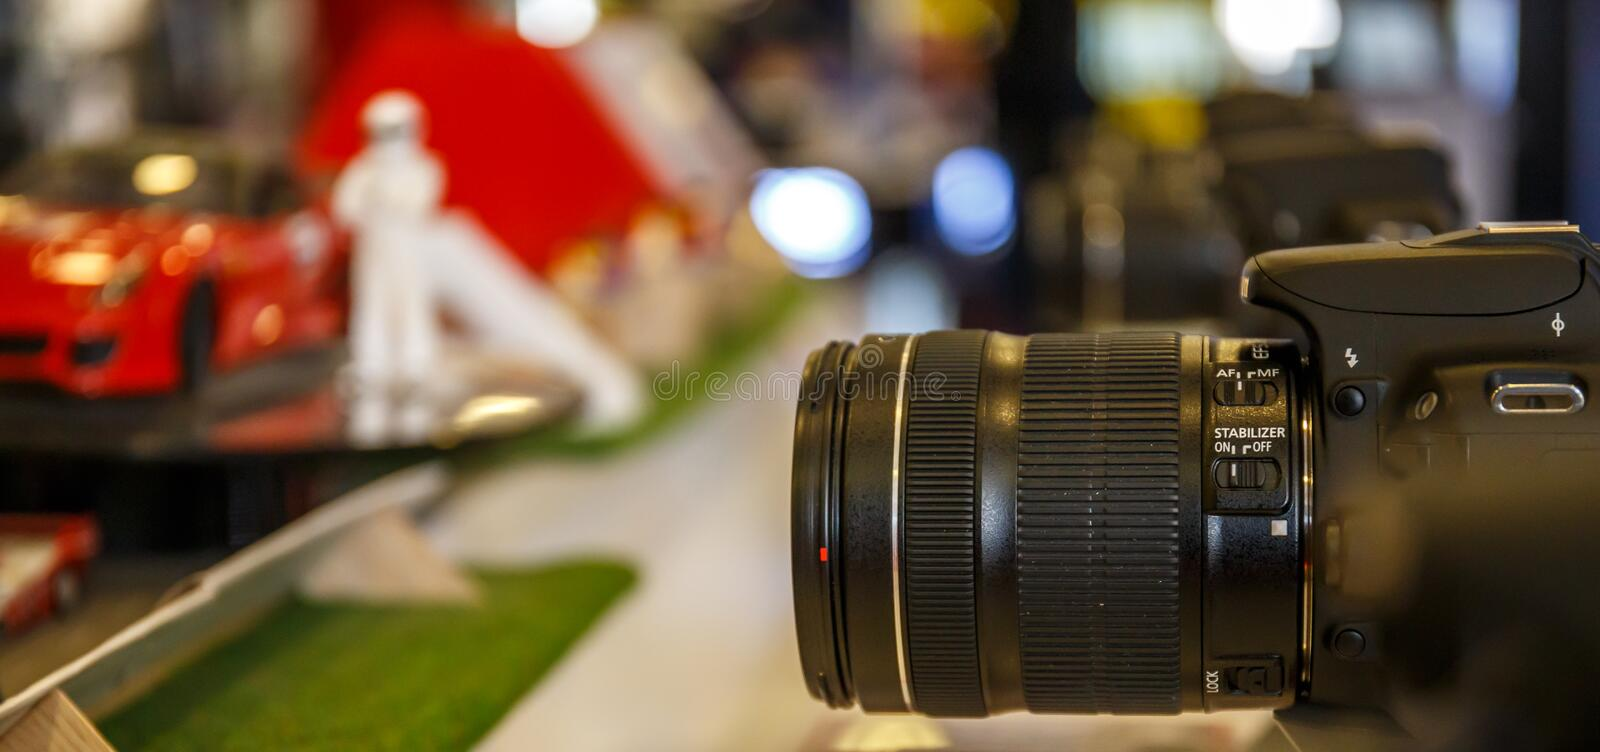 Test of cameras. Stand the test of cameras royalty free stock image